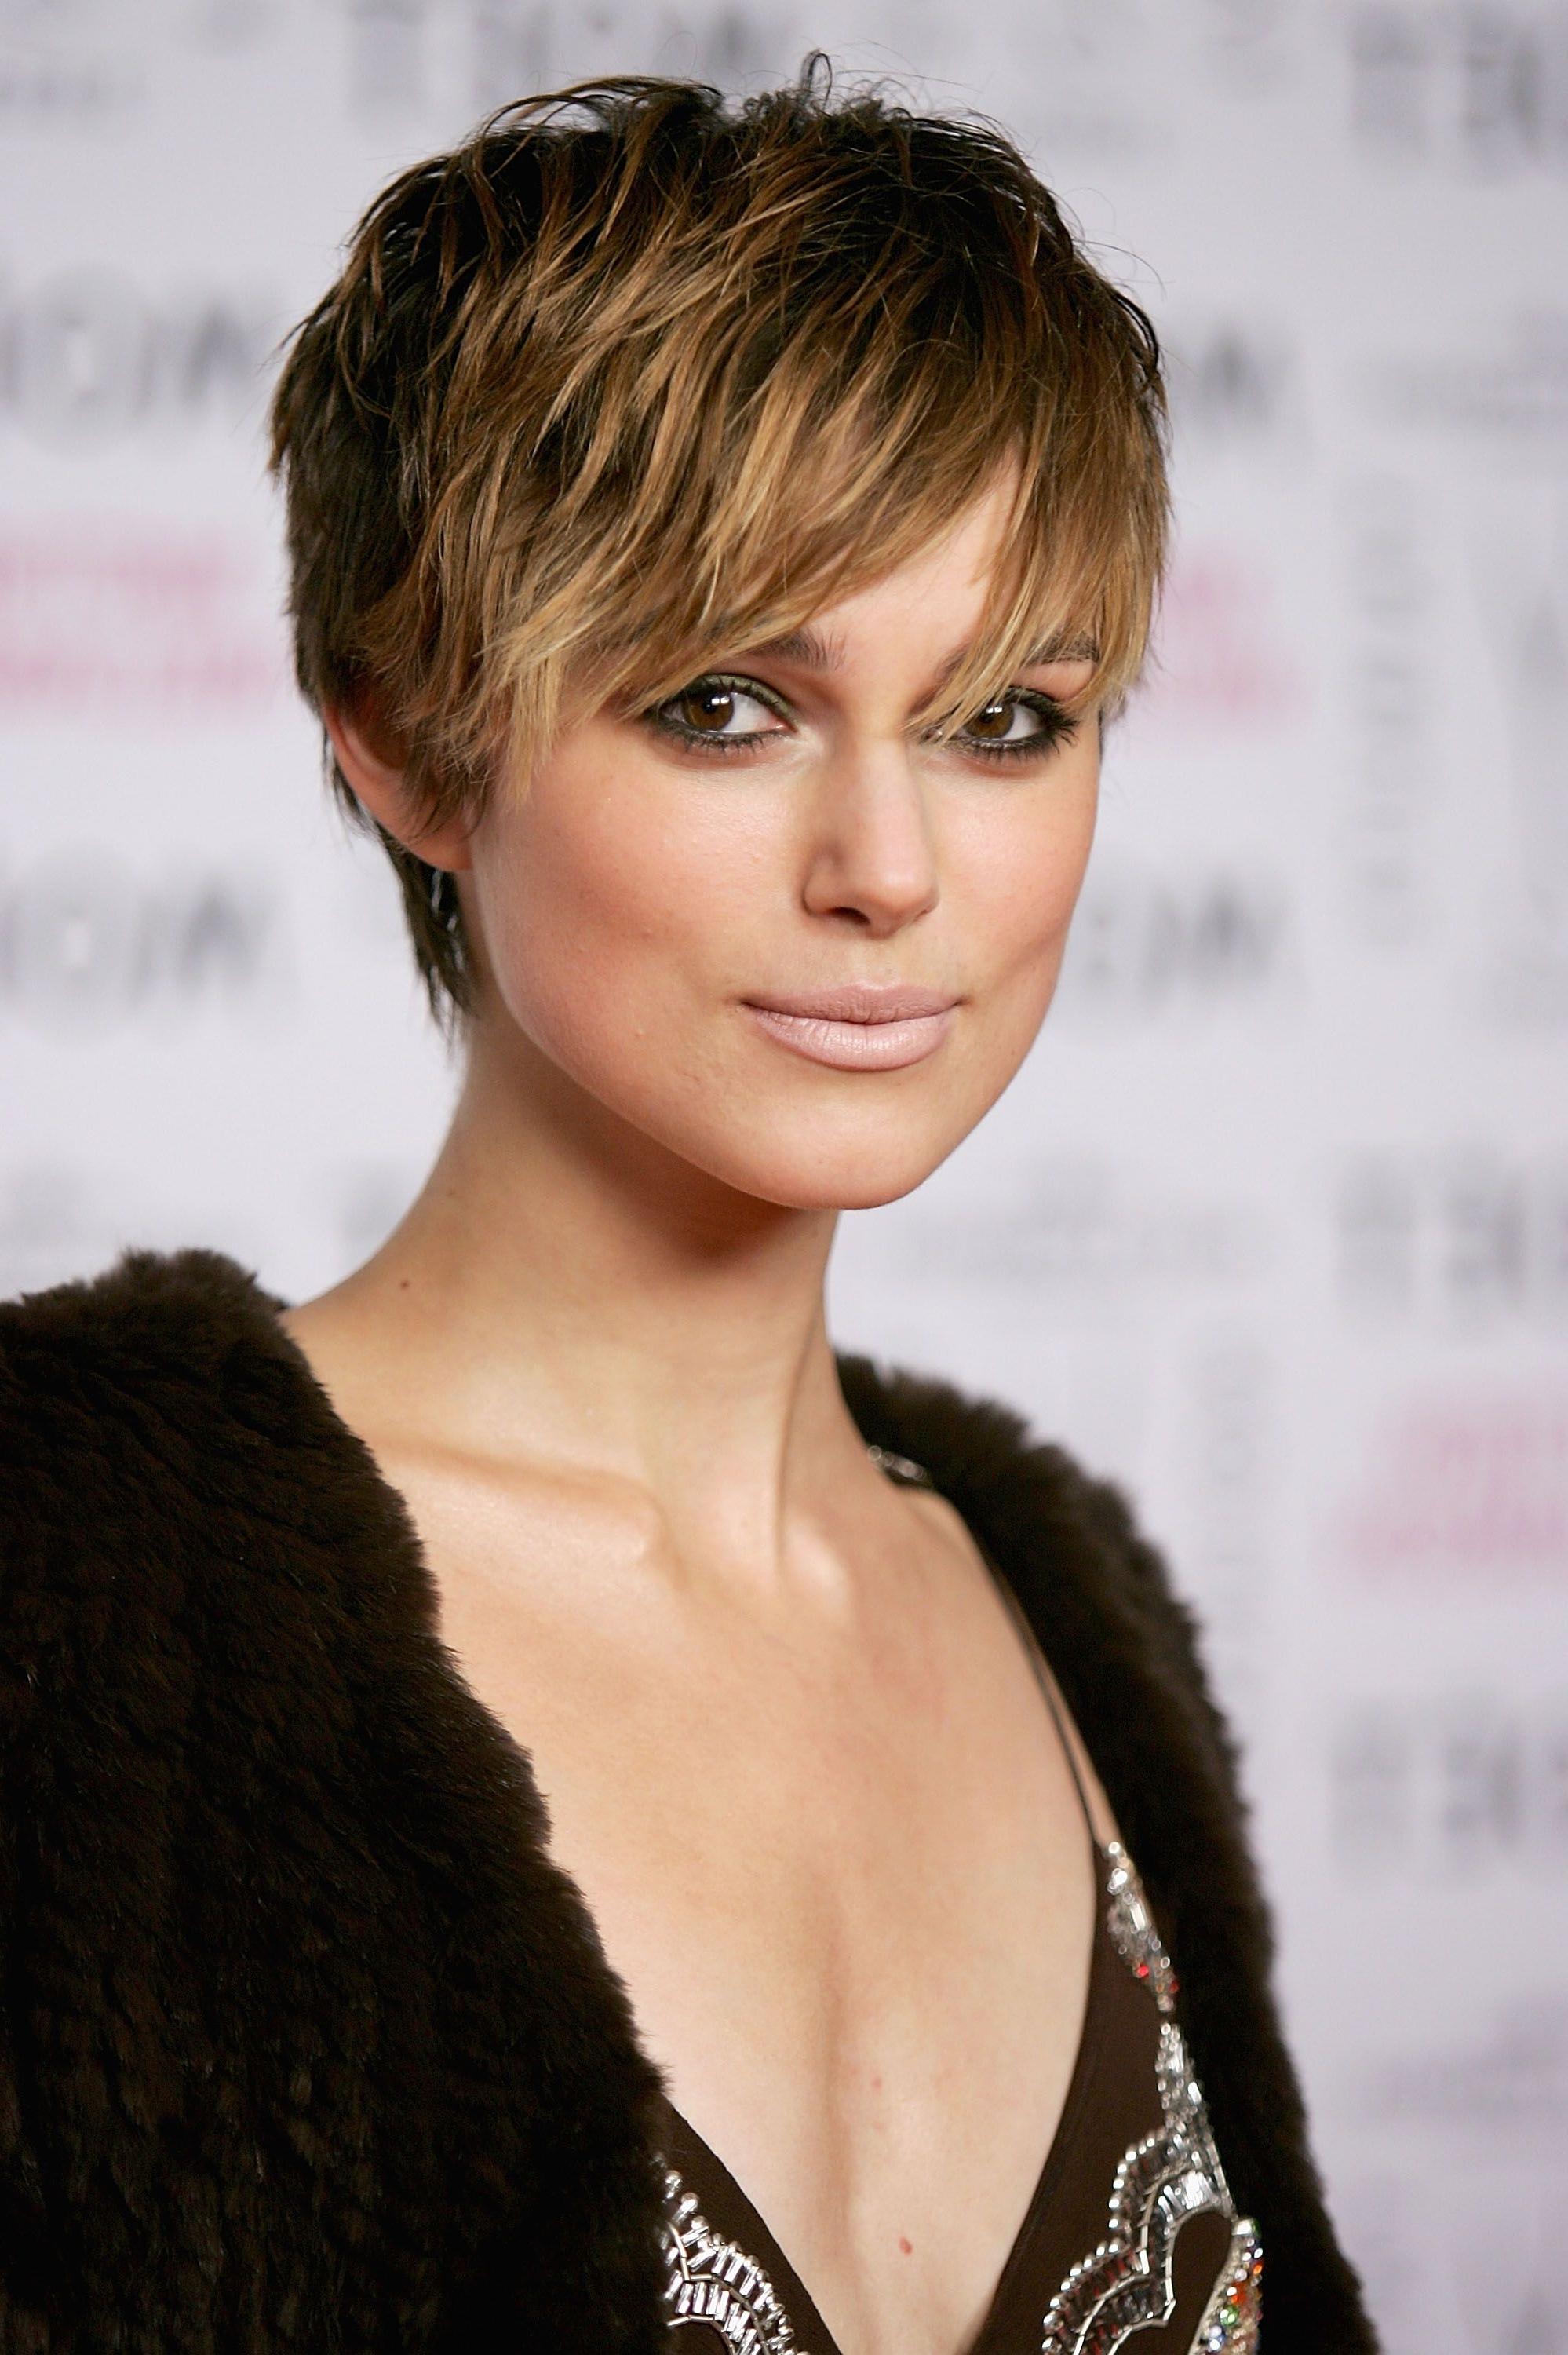 53 Best Pixie Cut Hairstyle Ideas 2018 – Cute Celebrity Pixie Haircuts Regarding 2018 Brown Pixie Hairstyles (View 13 of 15)